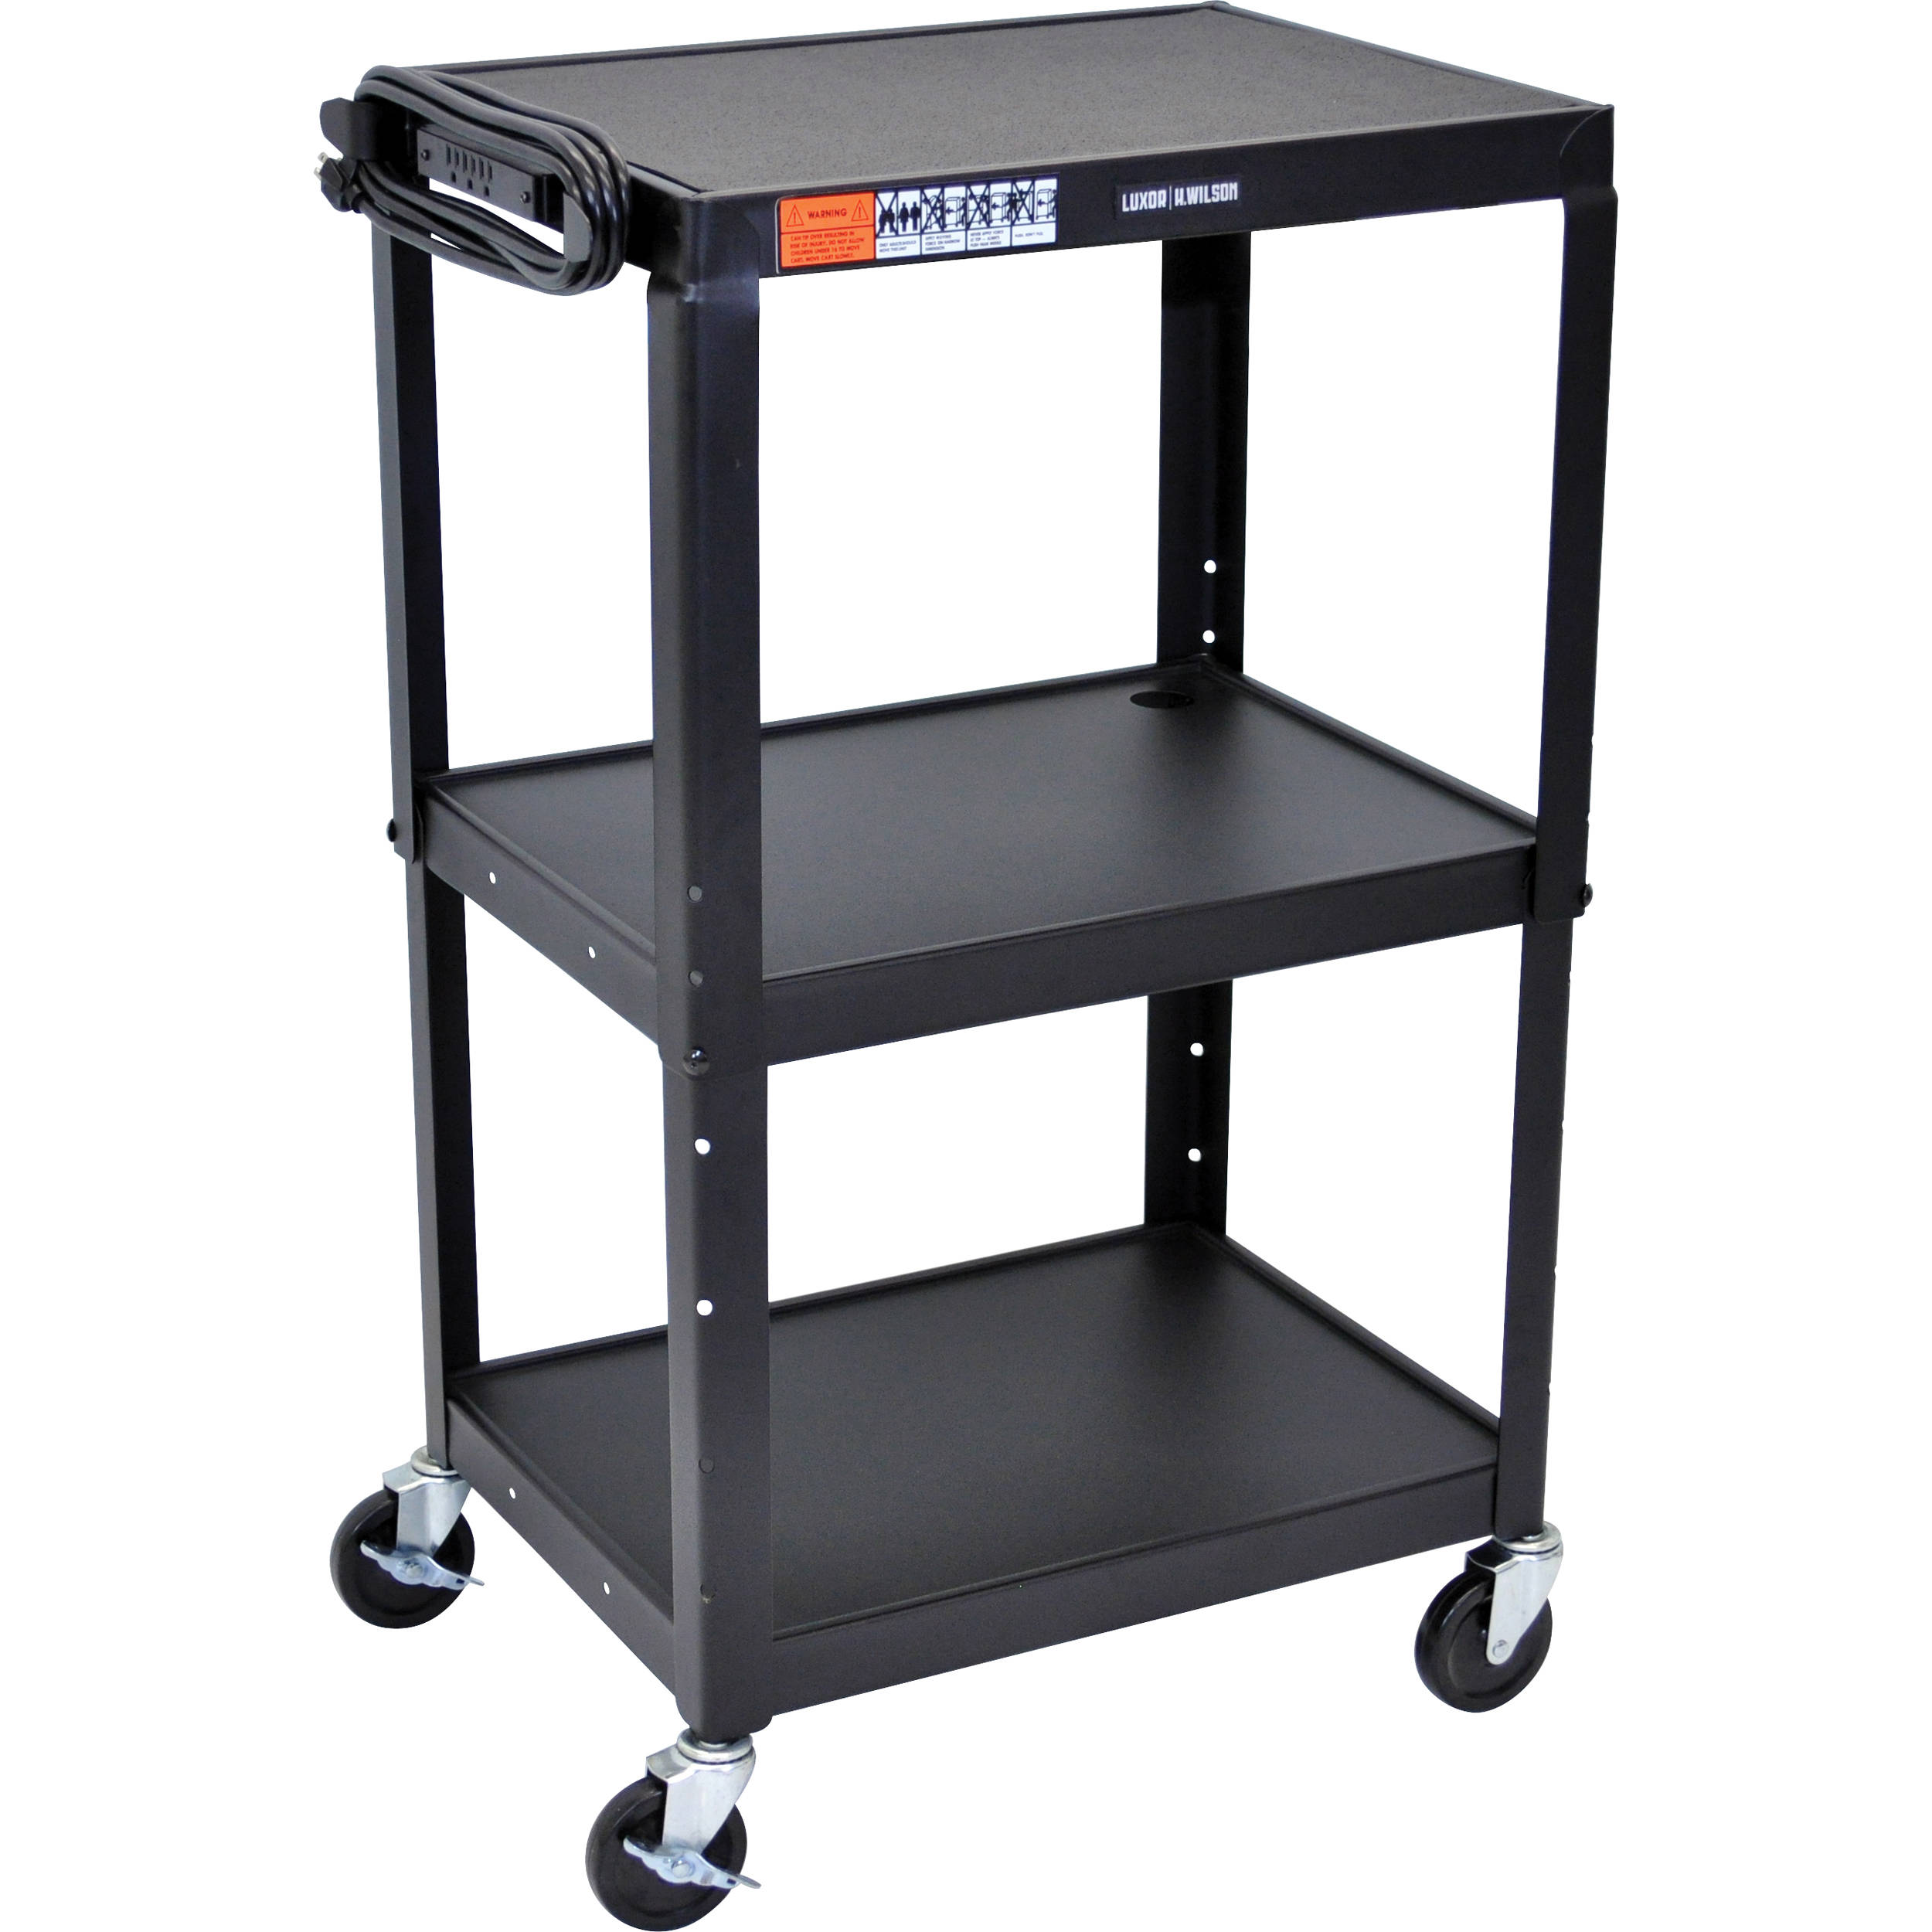 Luxor Steel Adjustable Height Av Cart With Three Shelves (black)